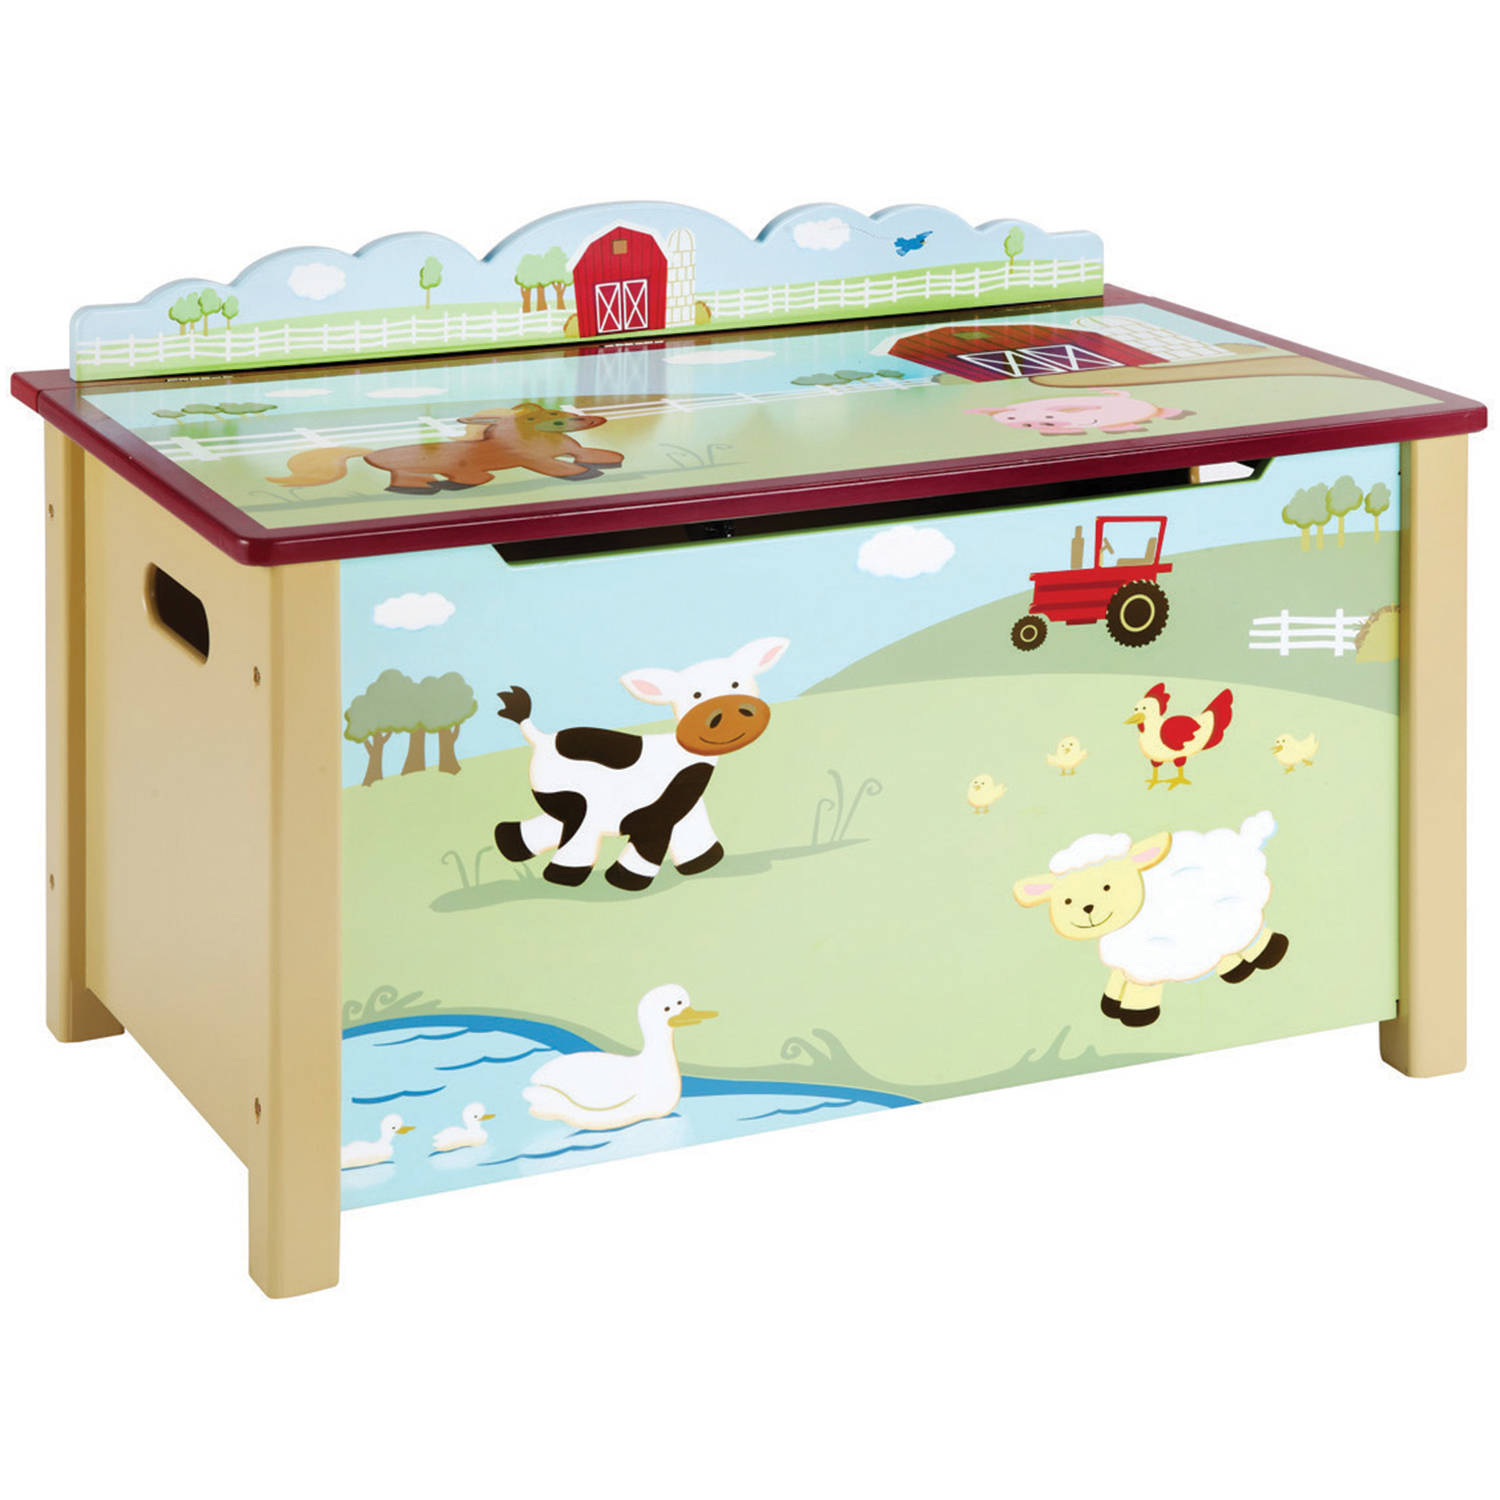 Guidecraft Farm Friends Toy Box, Green